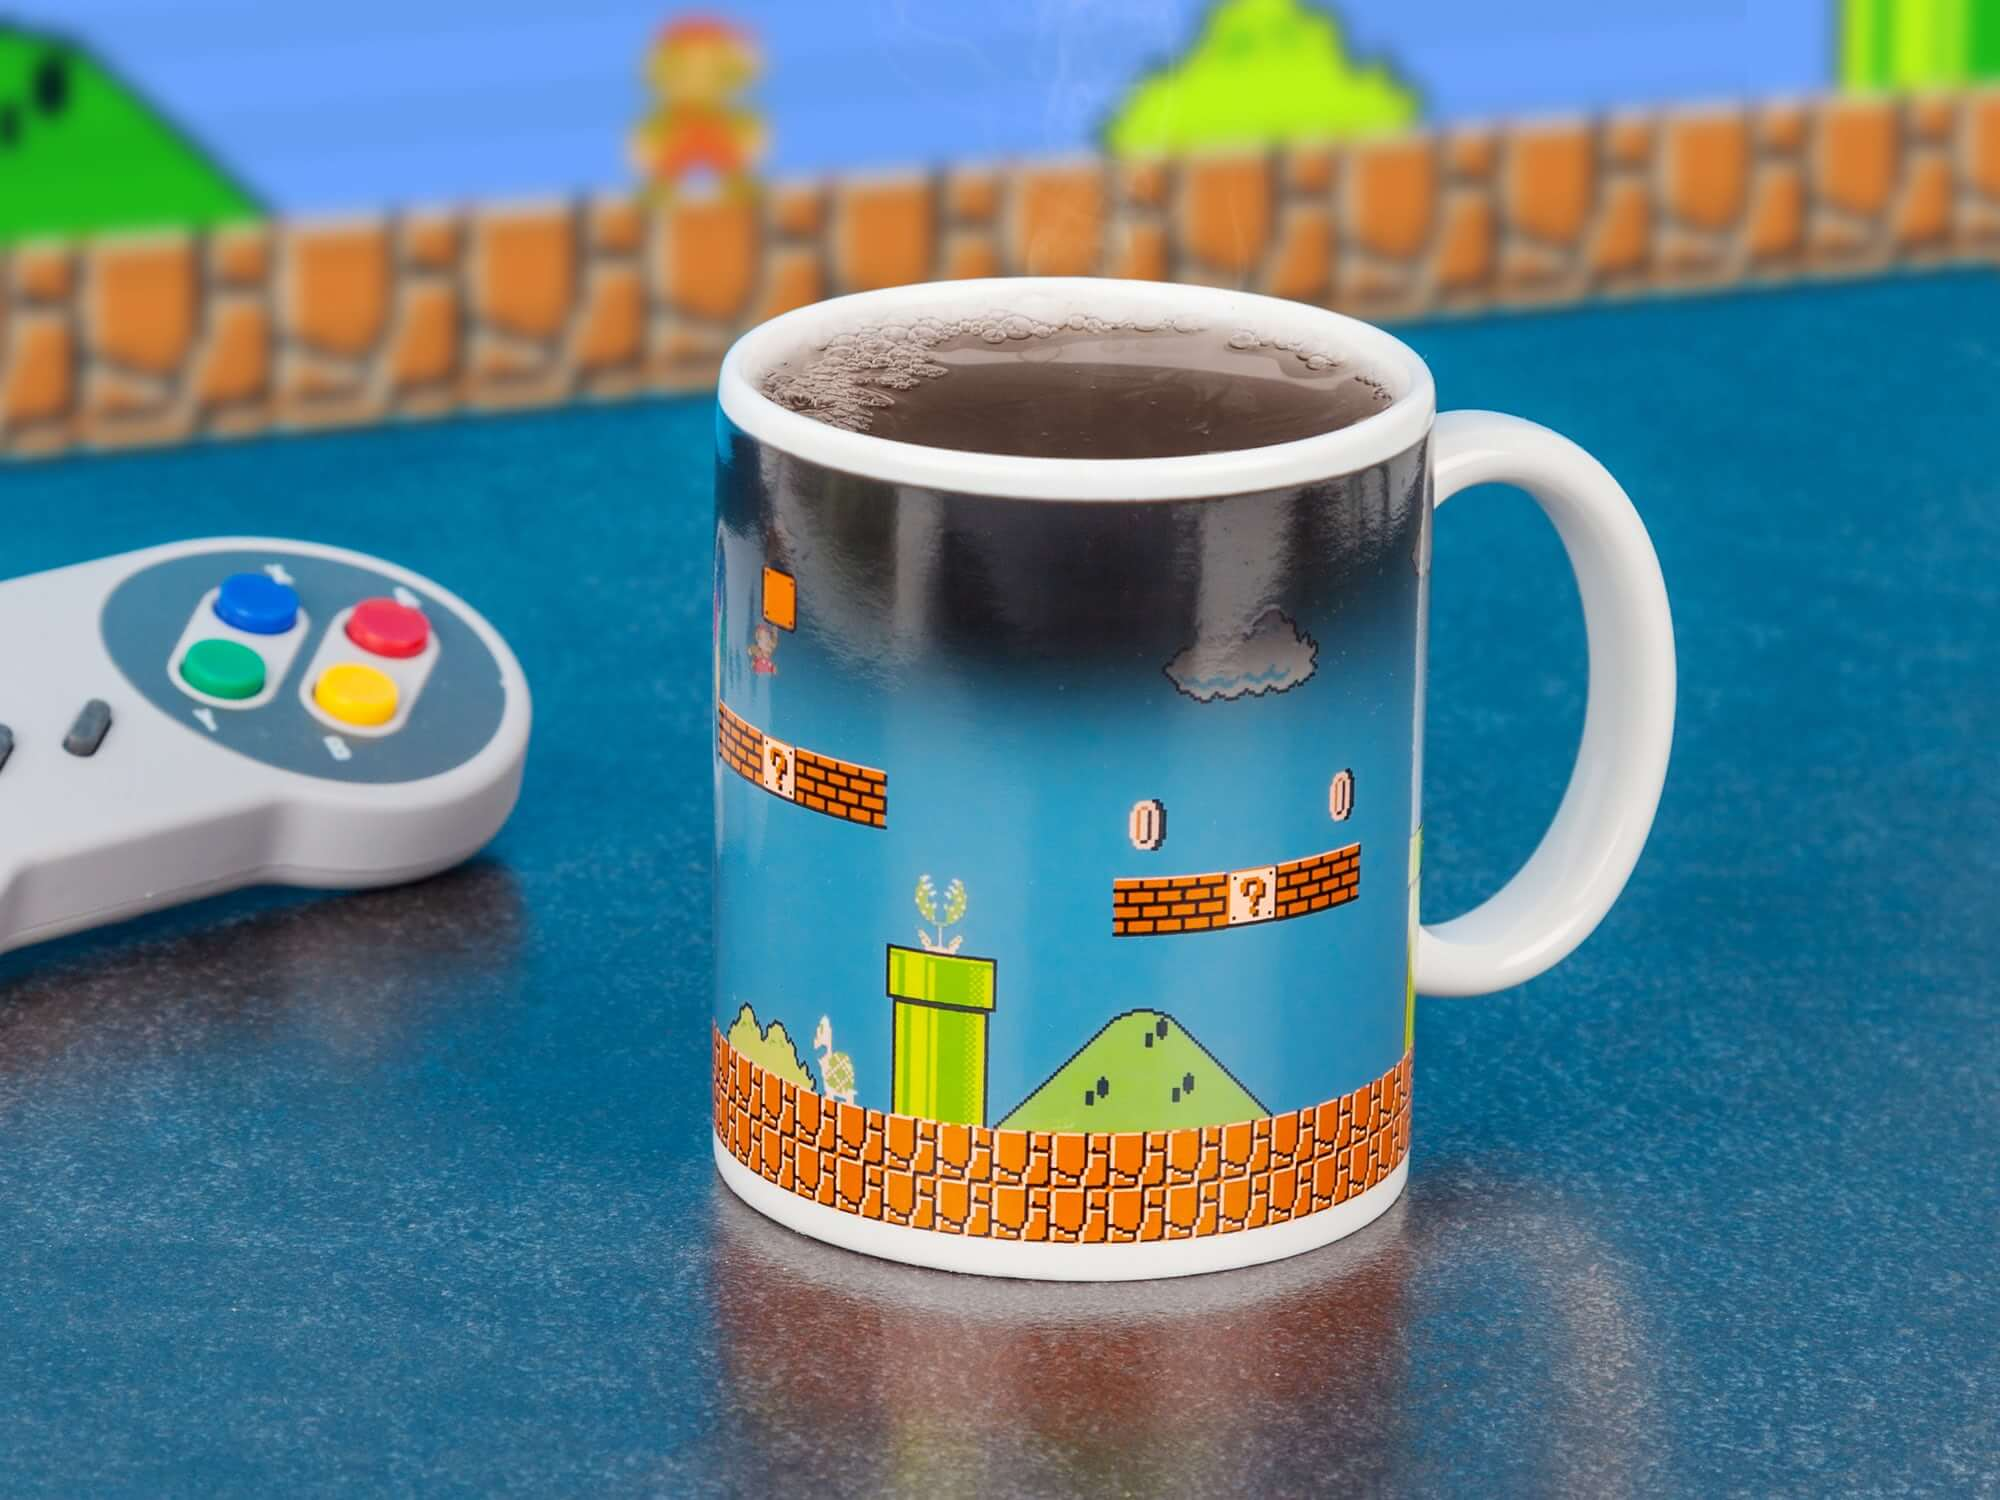 Super Mario Mug Heat SensItive Color Changing